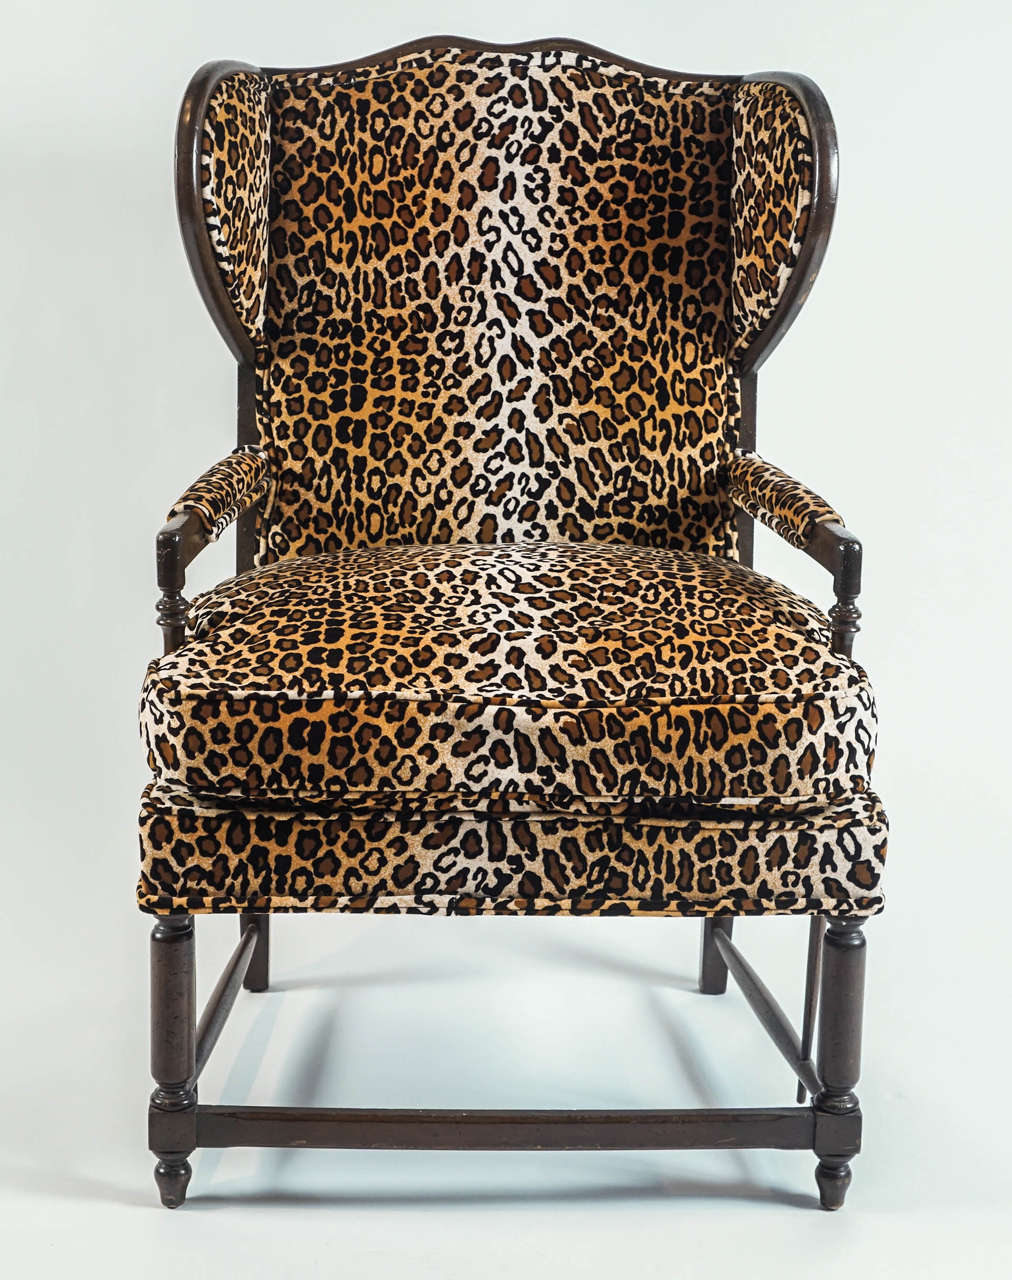 Leopard Print Wingback Chair at 1stdibs